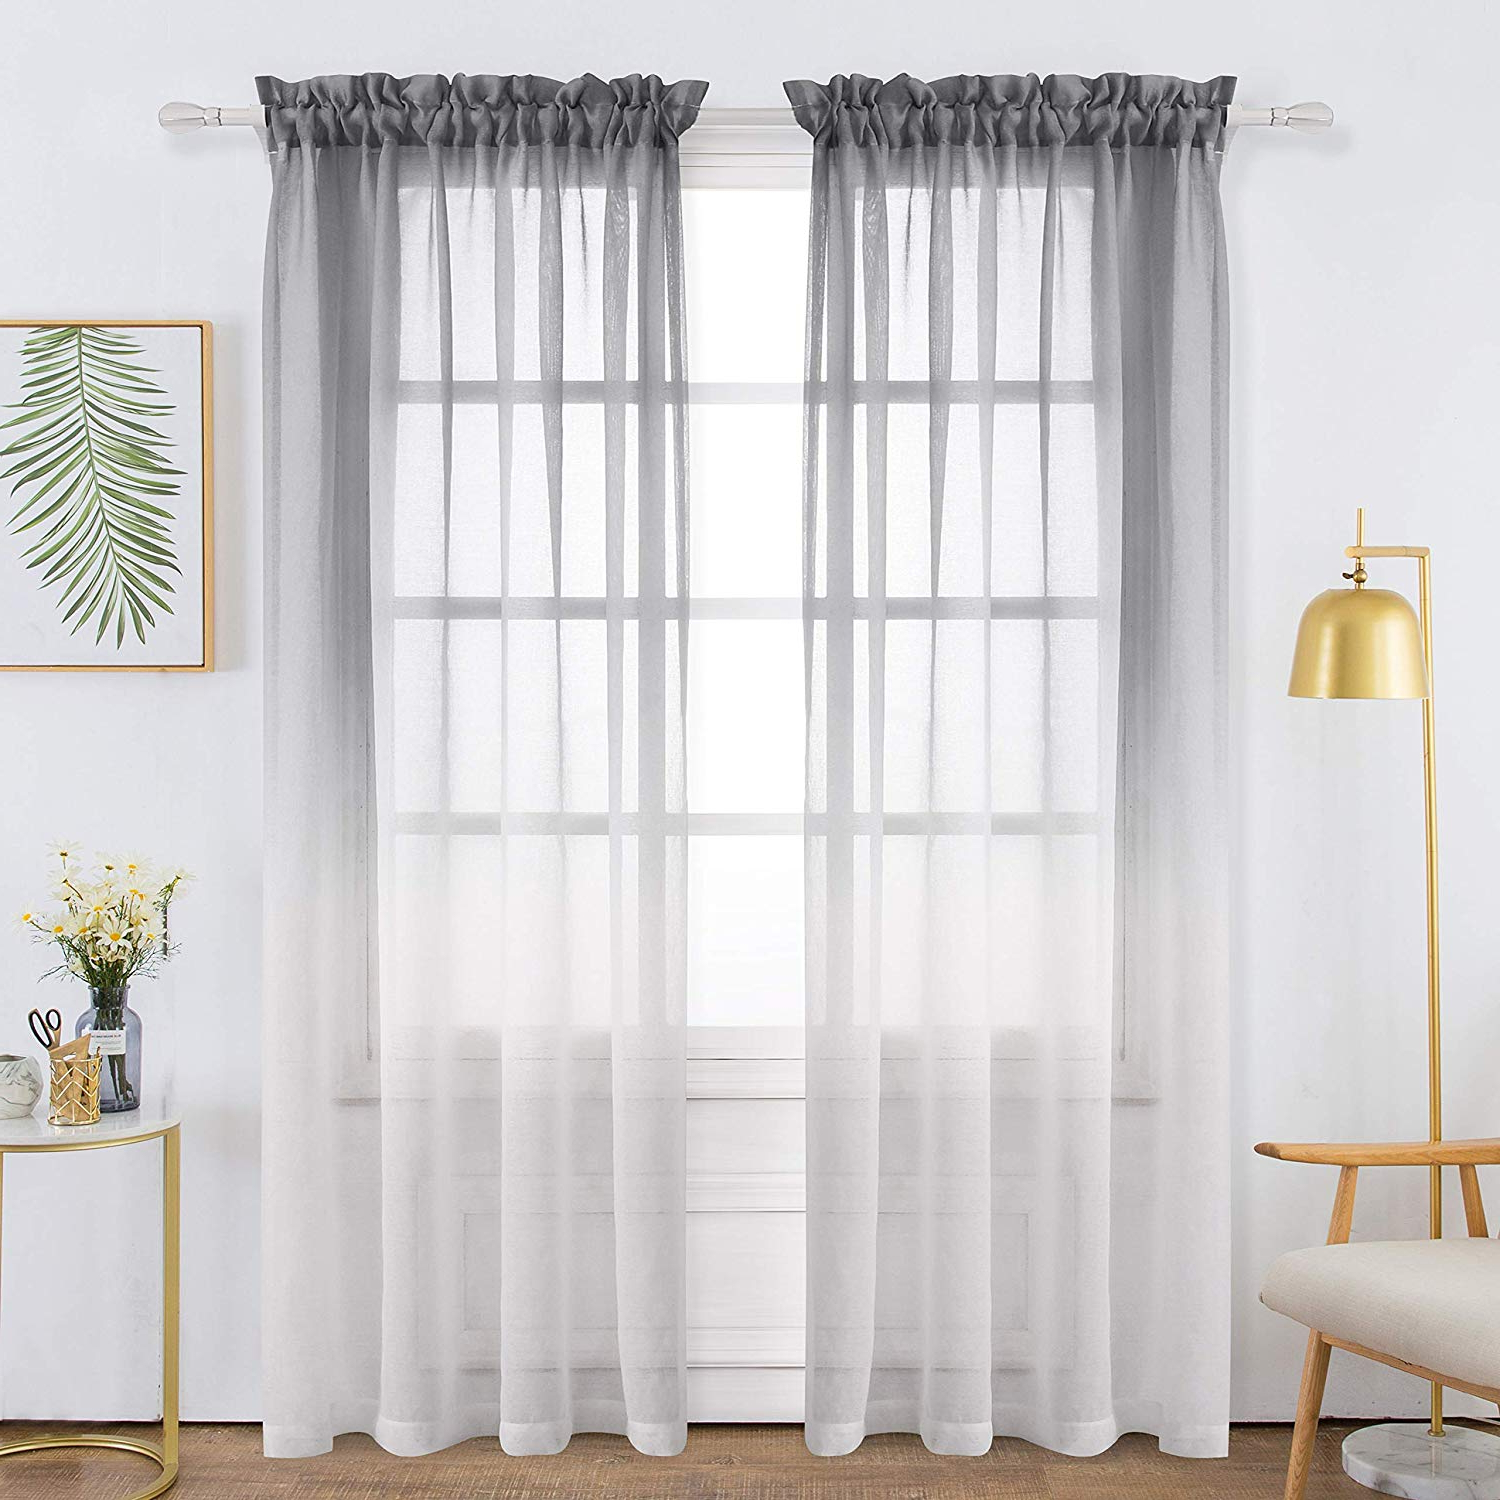 Ombre Faux Linen Semi Sheer Curtains Throughout 2020 Bermino Faux Linen Sheer Curtains Voile Rod Pocket Ombre Semi Sheer Curtains For Bedroom Living Room Set Of 2 Curtain Panels 54 X 84 Inch Grey (View 9 of 20)